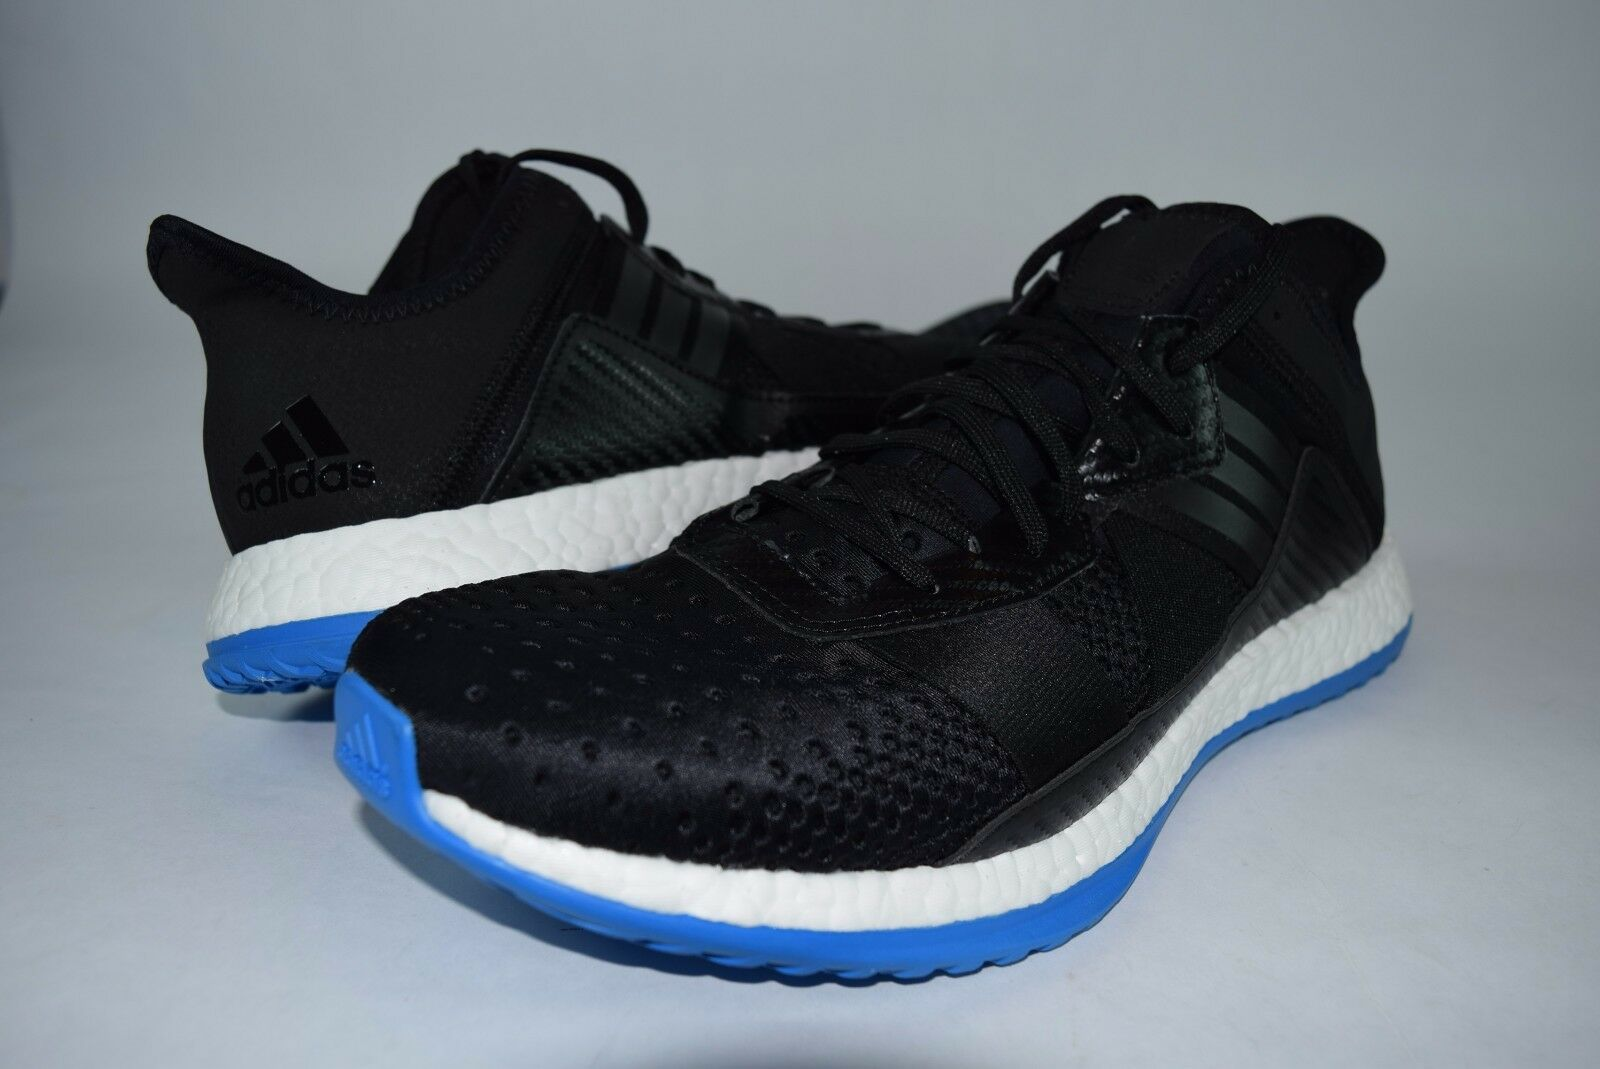 New Mens Adidas PureBOOST ZG AQ5037 sz 12.5 Black bluee Trainers Sneakers shoes